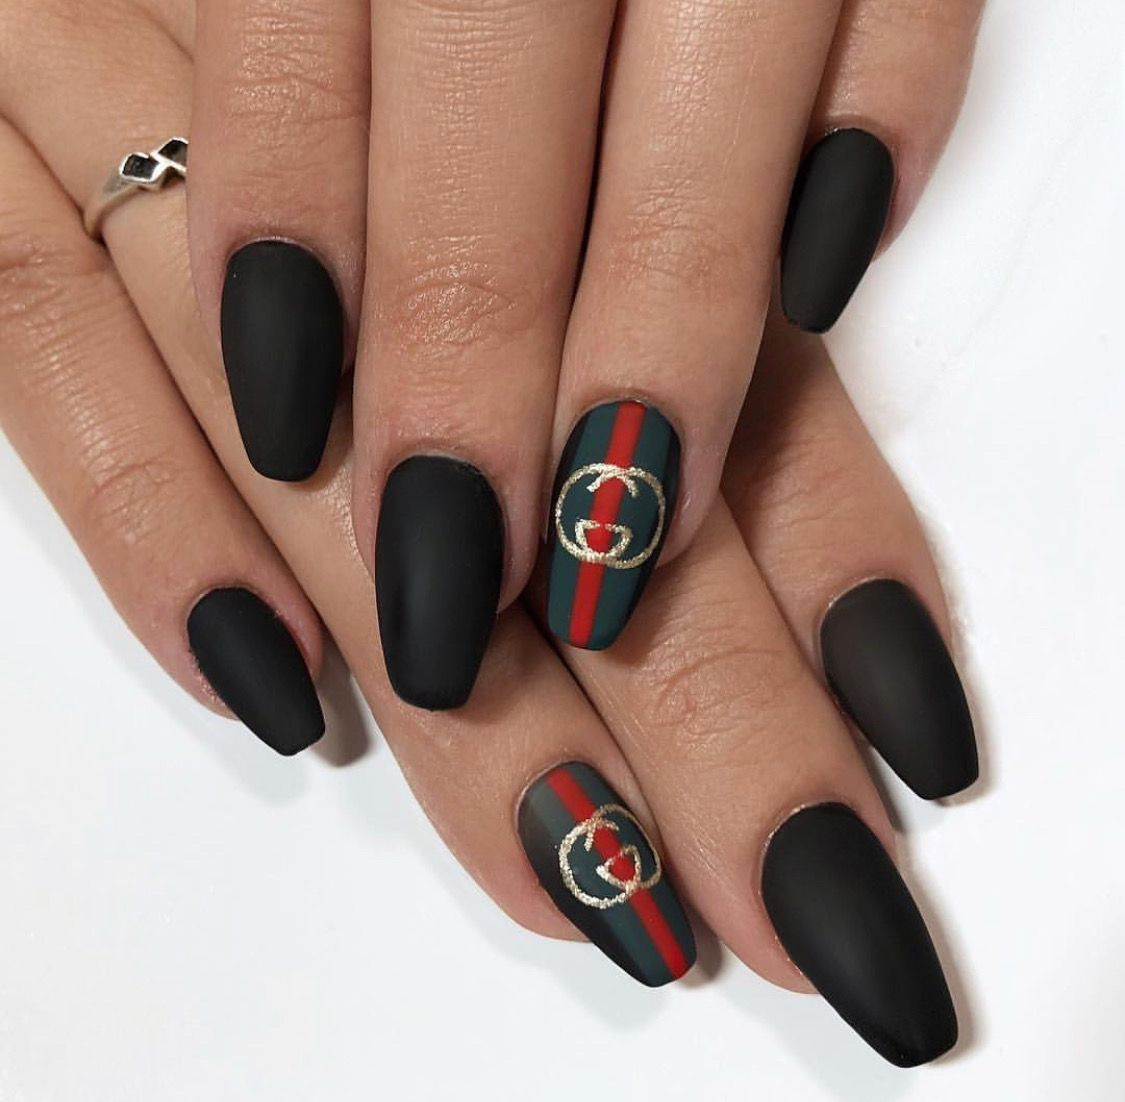 Pin By Elldorie On Nail Art Gucci Nails Chanel Nails Trendy Nails